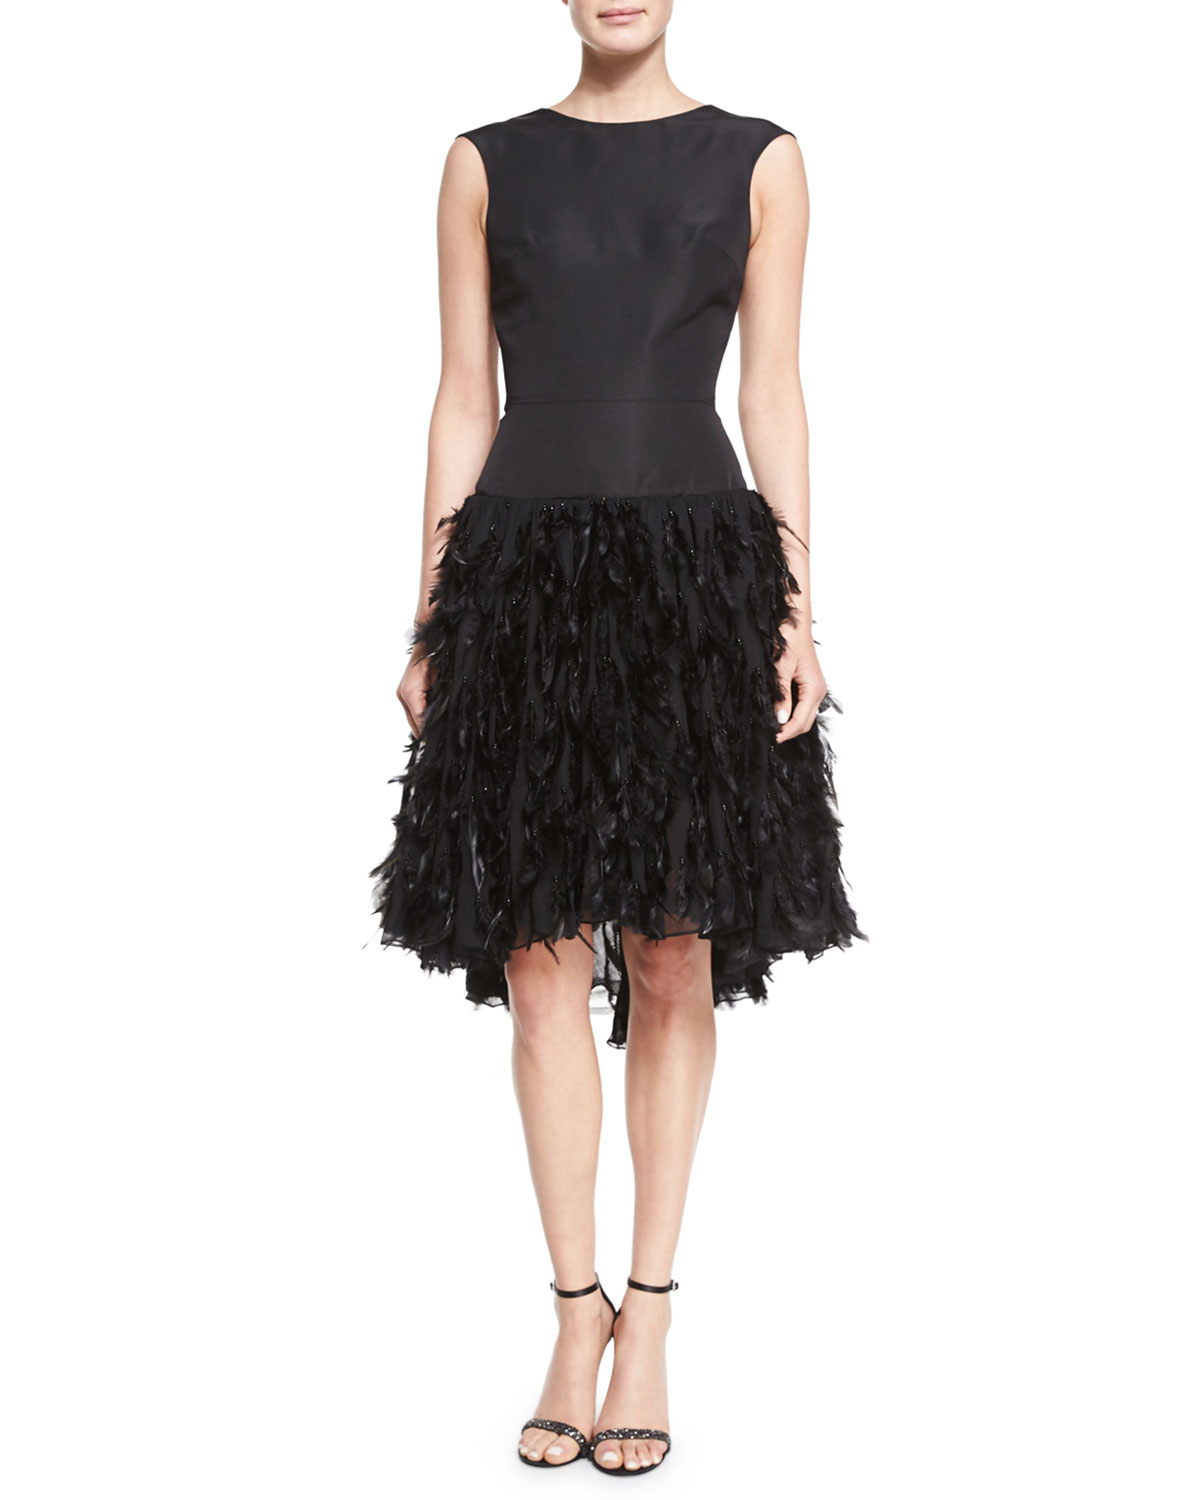 Sleeveless Feather-Appliqué Cocktail Dress, Black